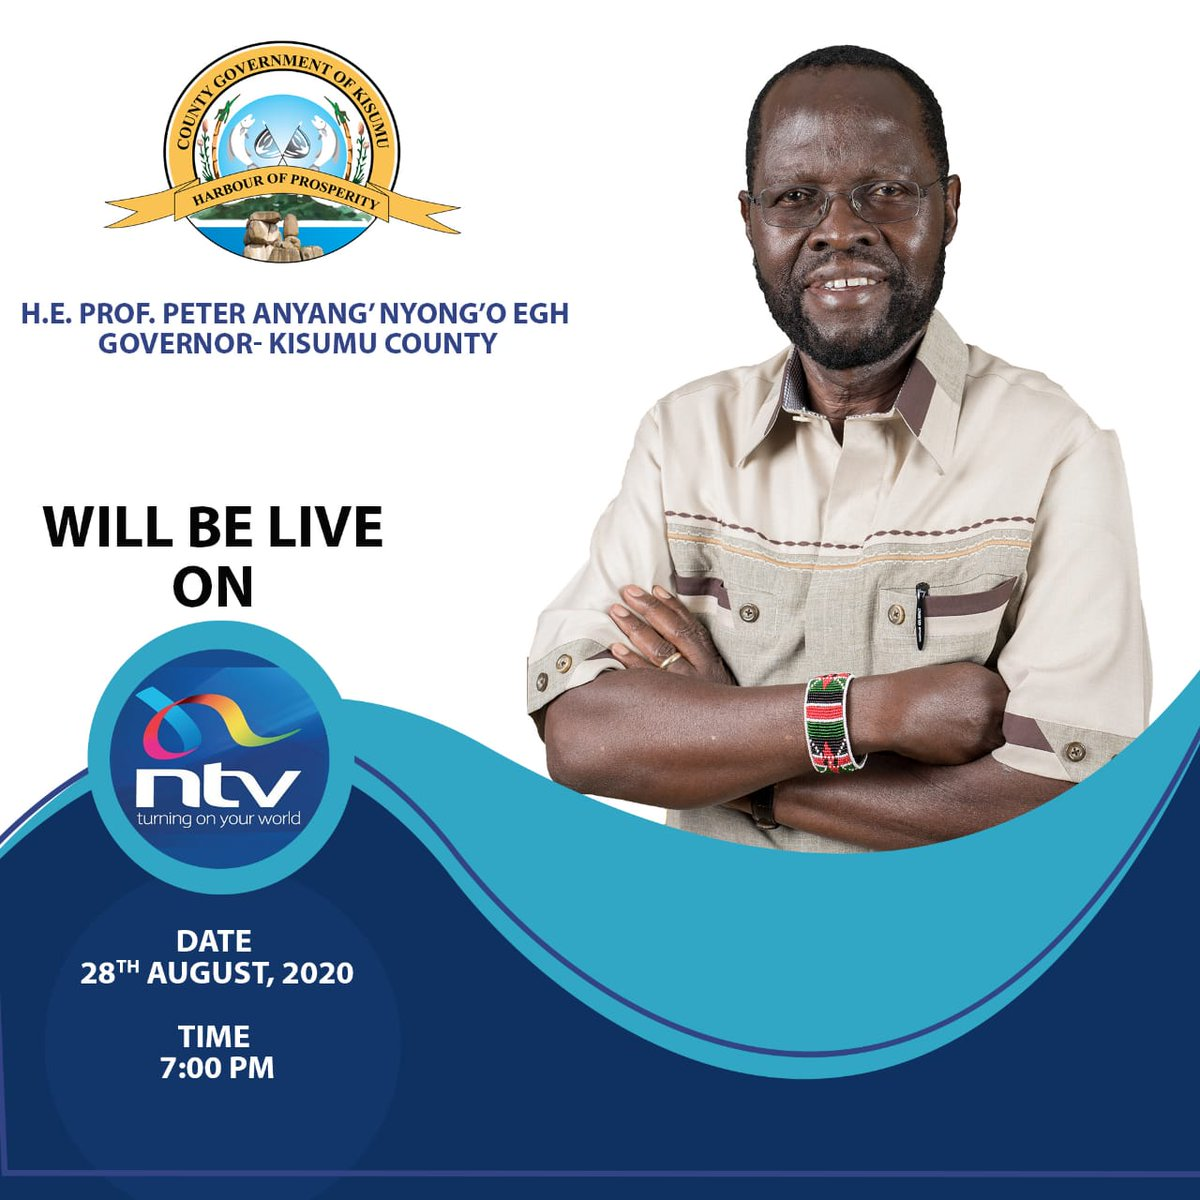 I will be live on @ntvkenya as from 7 pm tonight to share my thoughts on Katiba @10   #Katiba10YearsLater  #KatibaAt10 https://t.co/JmcMOl6Dn0